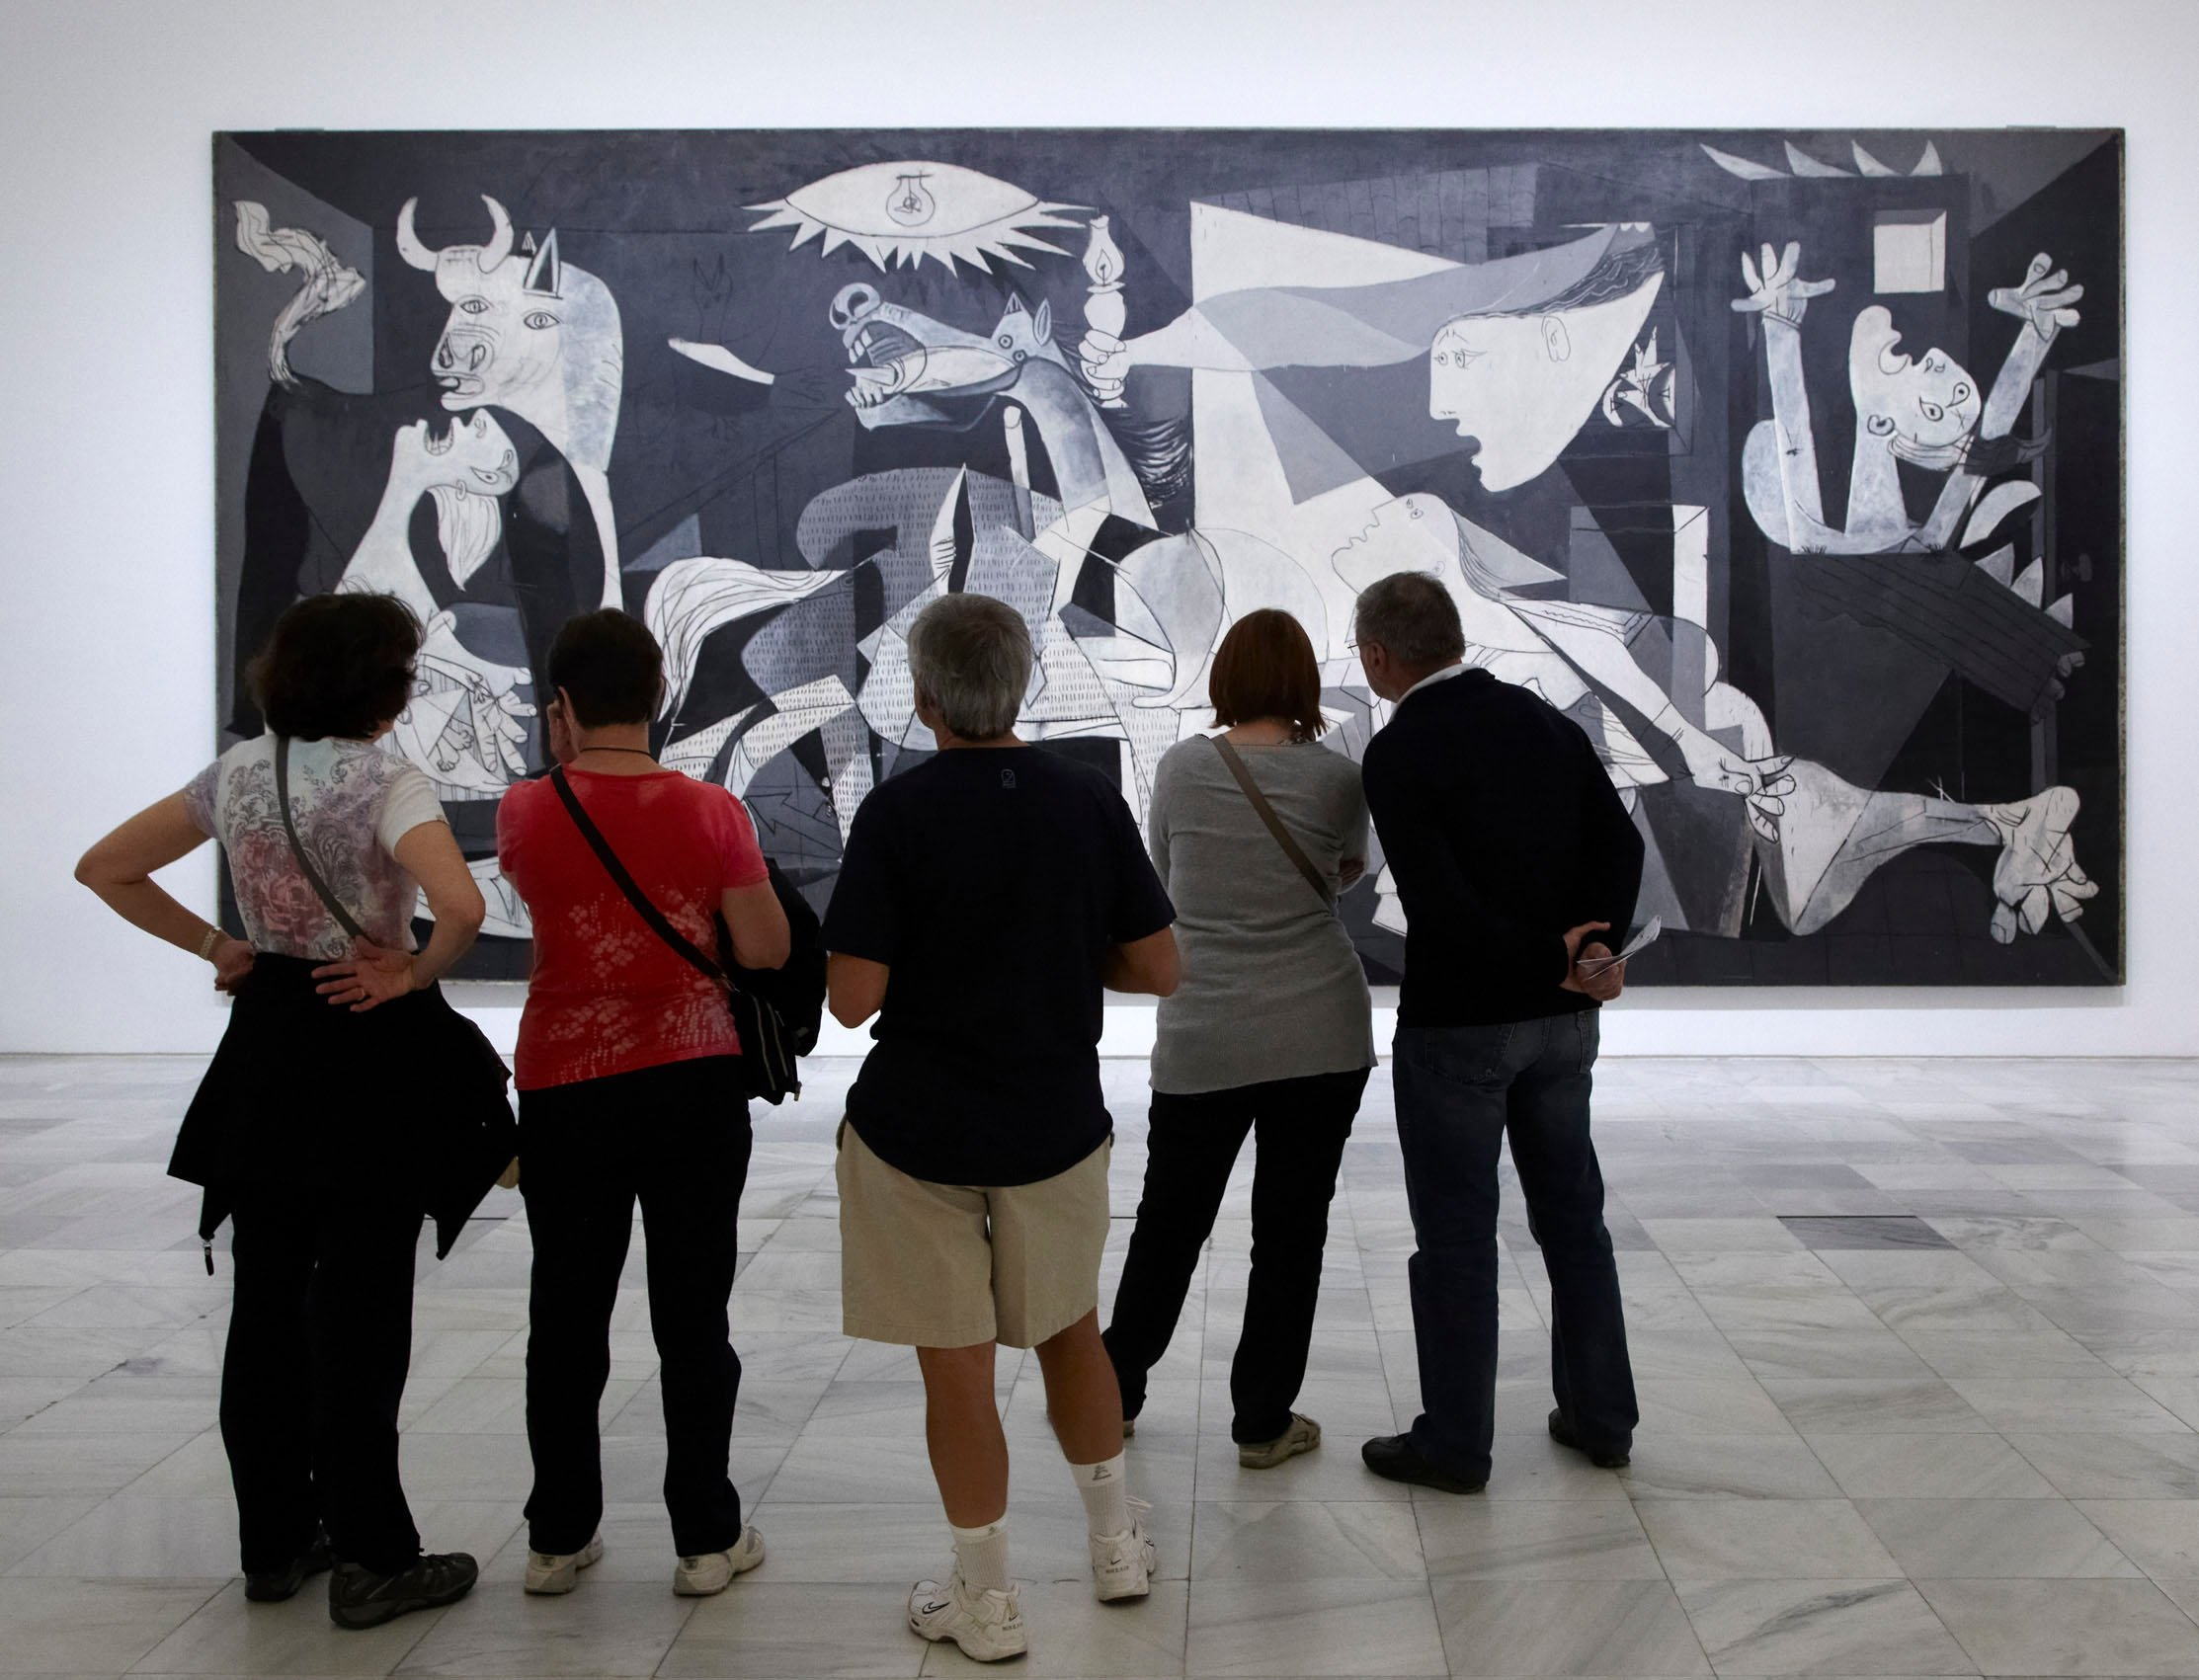 'Guernica,' one of Pablo Picasso's most famous paintings, can be seen in the Reina Sofia National Museum in Madrid. (DPA Photo)